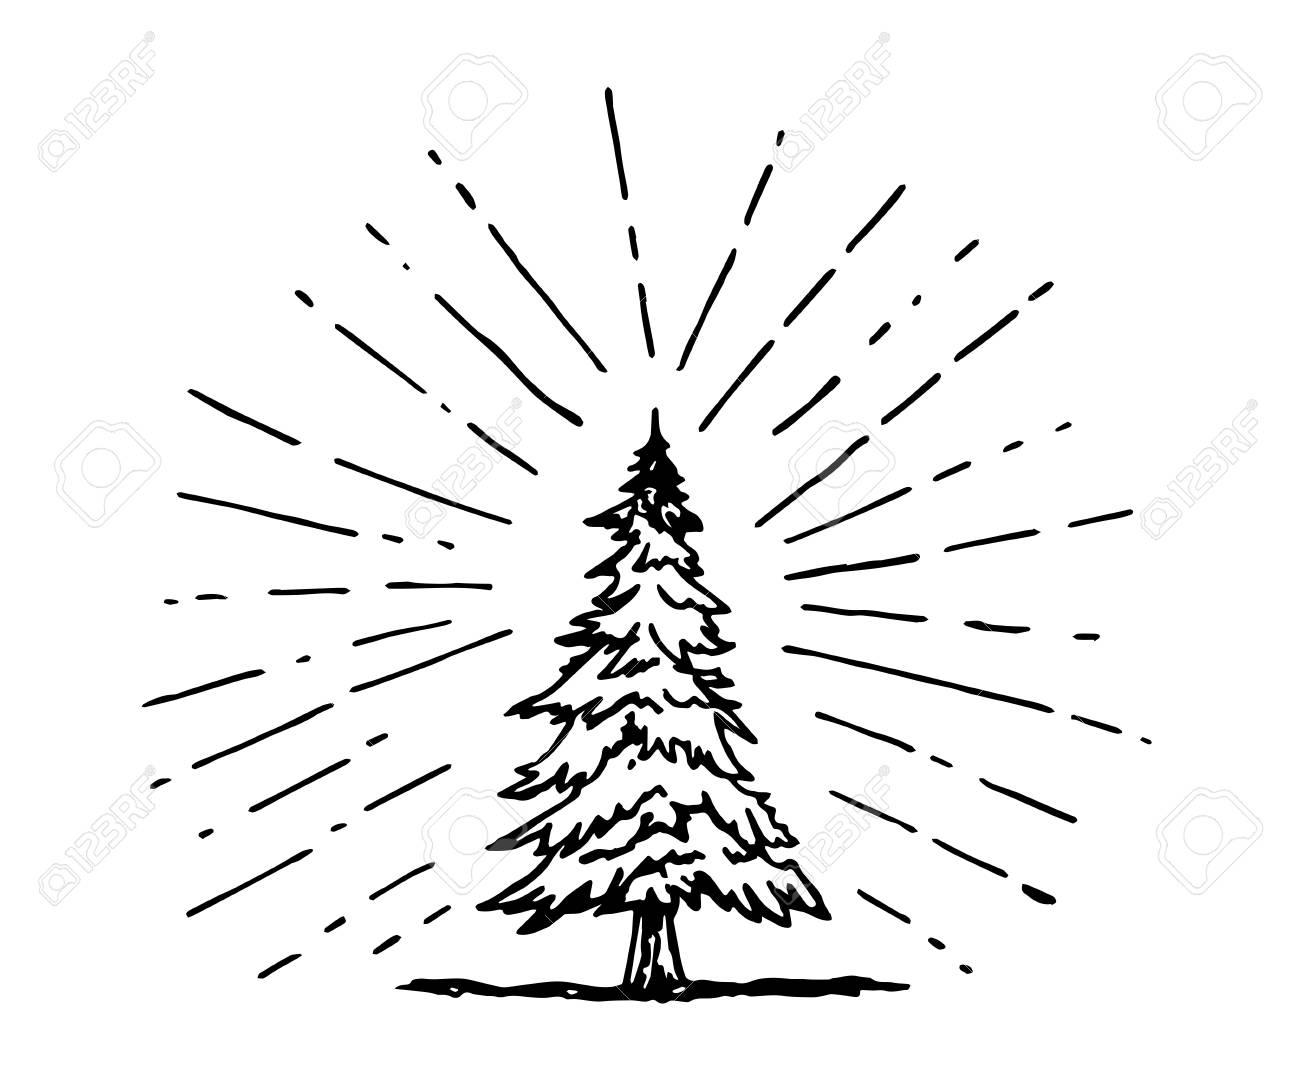 pine tree drawing in